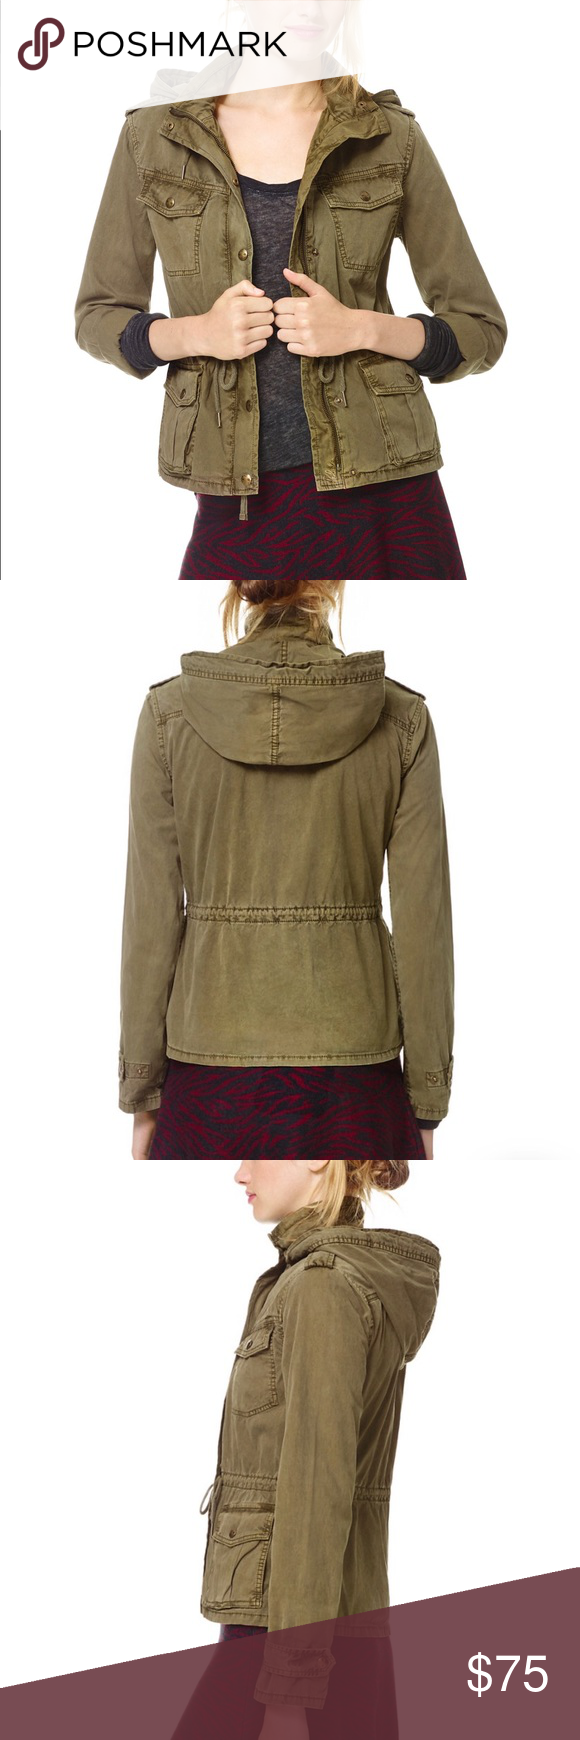 Aritzia Talula Troop Jacket Photos Coming Soon Inspired By An Authentic Military Jacket This Shrunken Jacket Was Trea Clothes Design Fashion Fashion Design [ 1740 x 580 Pixel ]